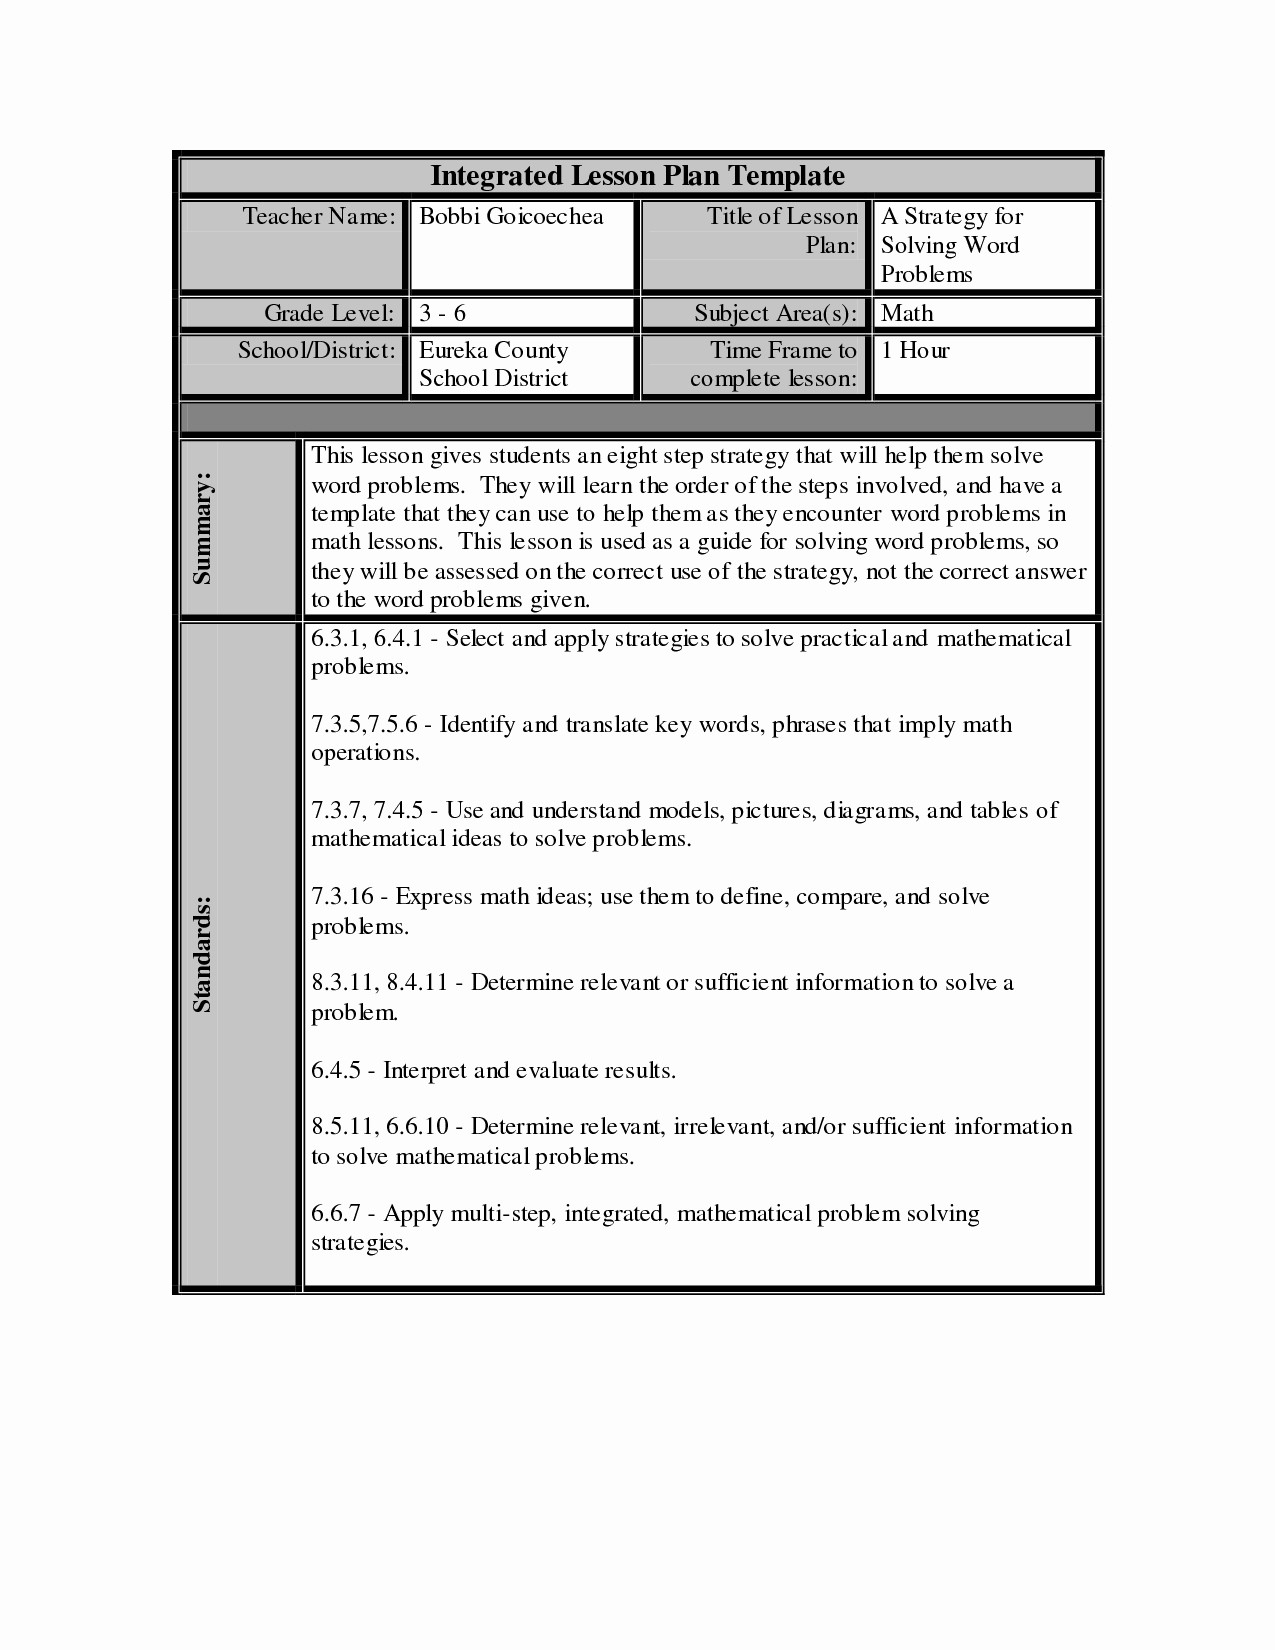 Training Lesson Plan Template Word Beautiful Lesson Plan Template Word